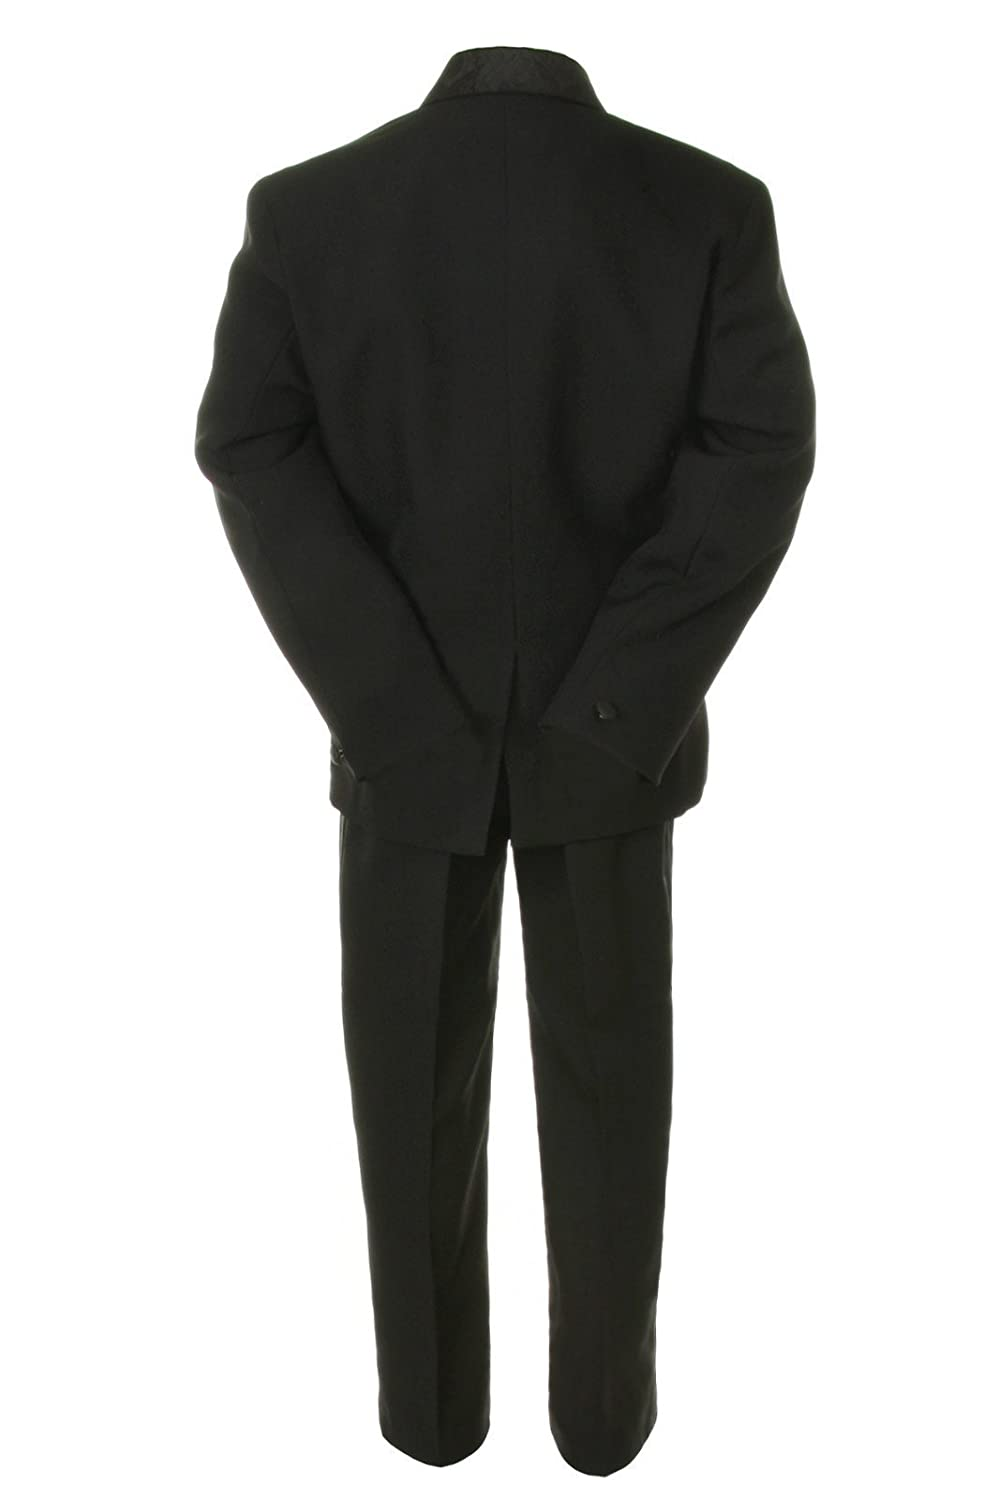 Unotuc Formal Boy Black Suit Paisley Tuxedo from Baby to Teen